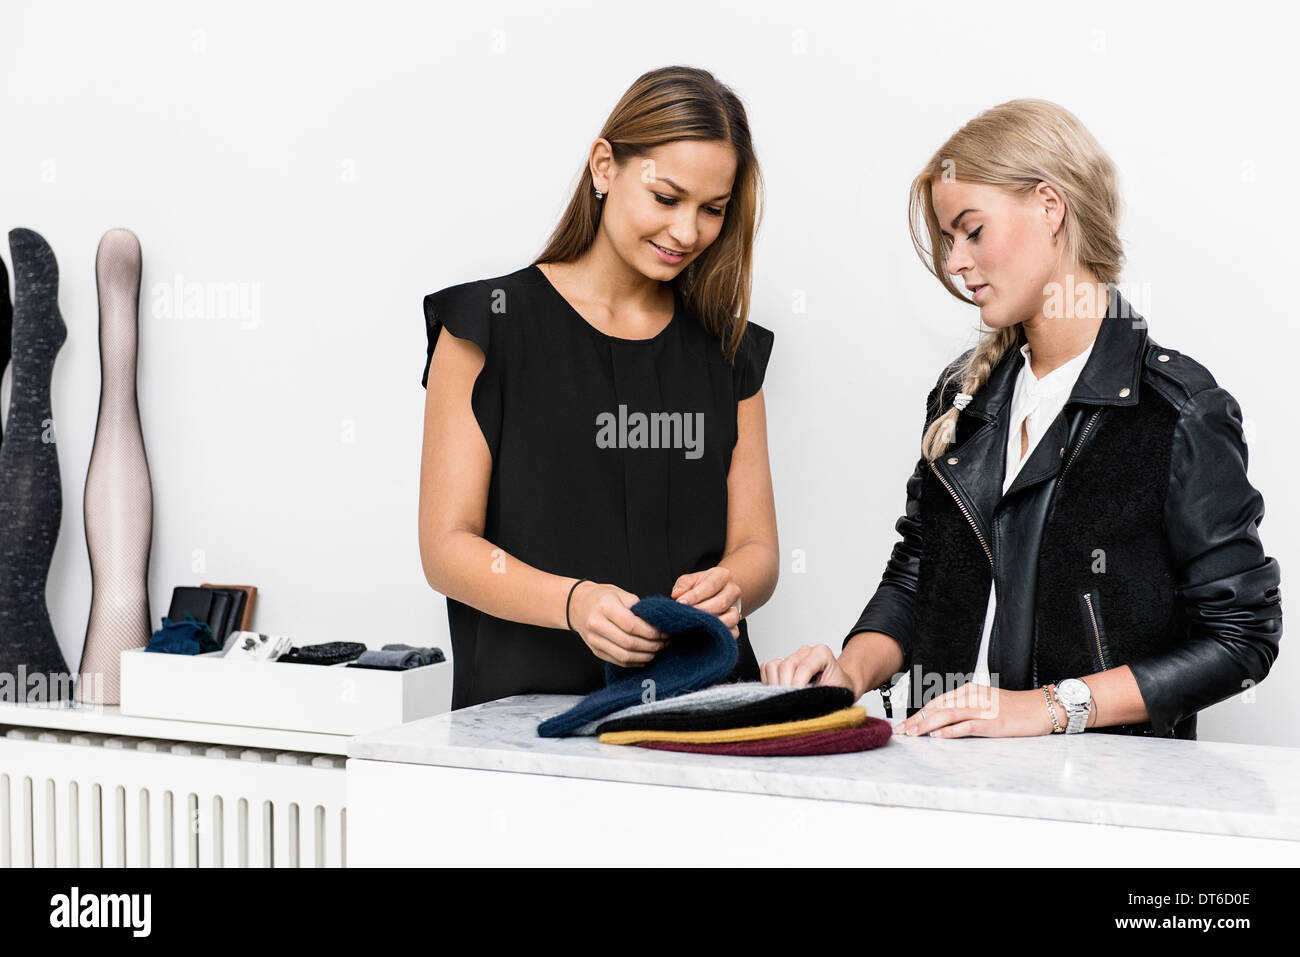 Female colleagues examining beanie hats - Stock Image